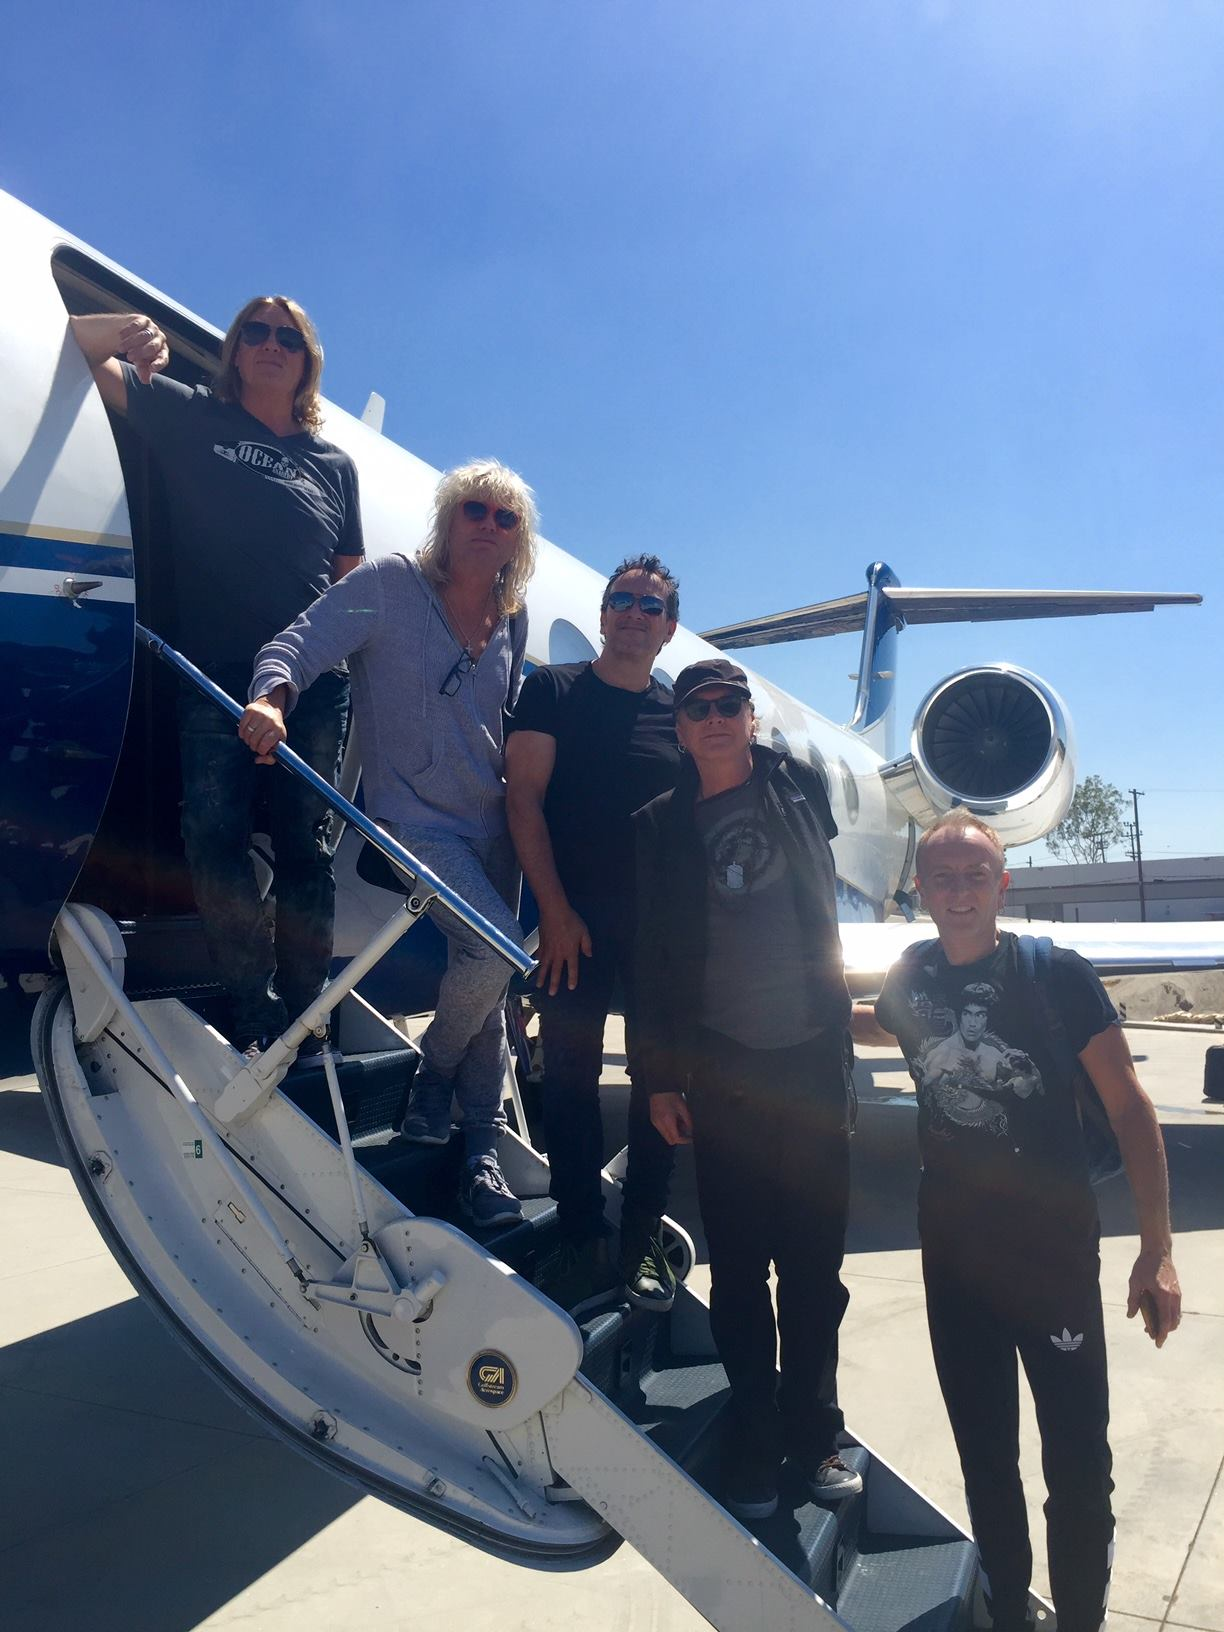 Joe Elliott from Def Leppard in Signature Ocean Anarchy Collection